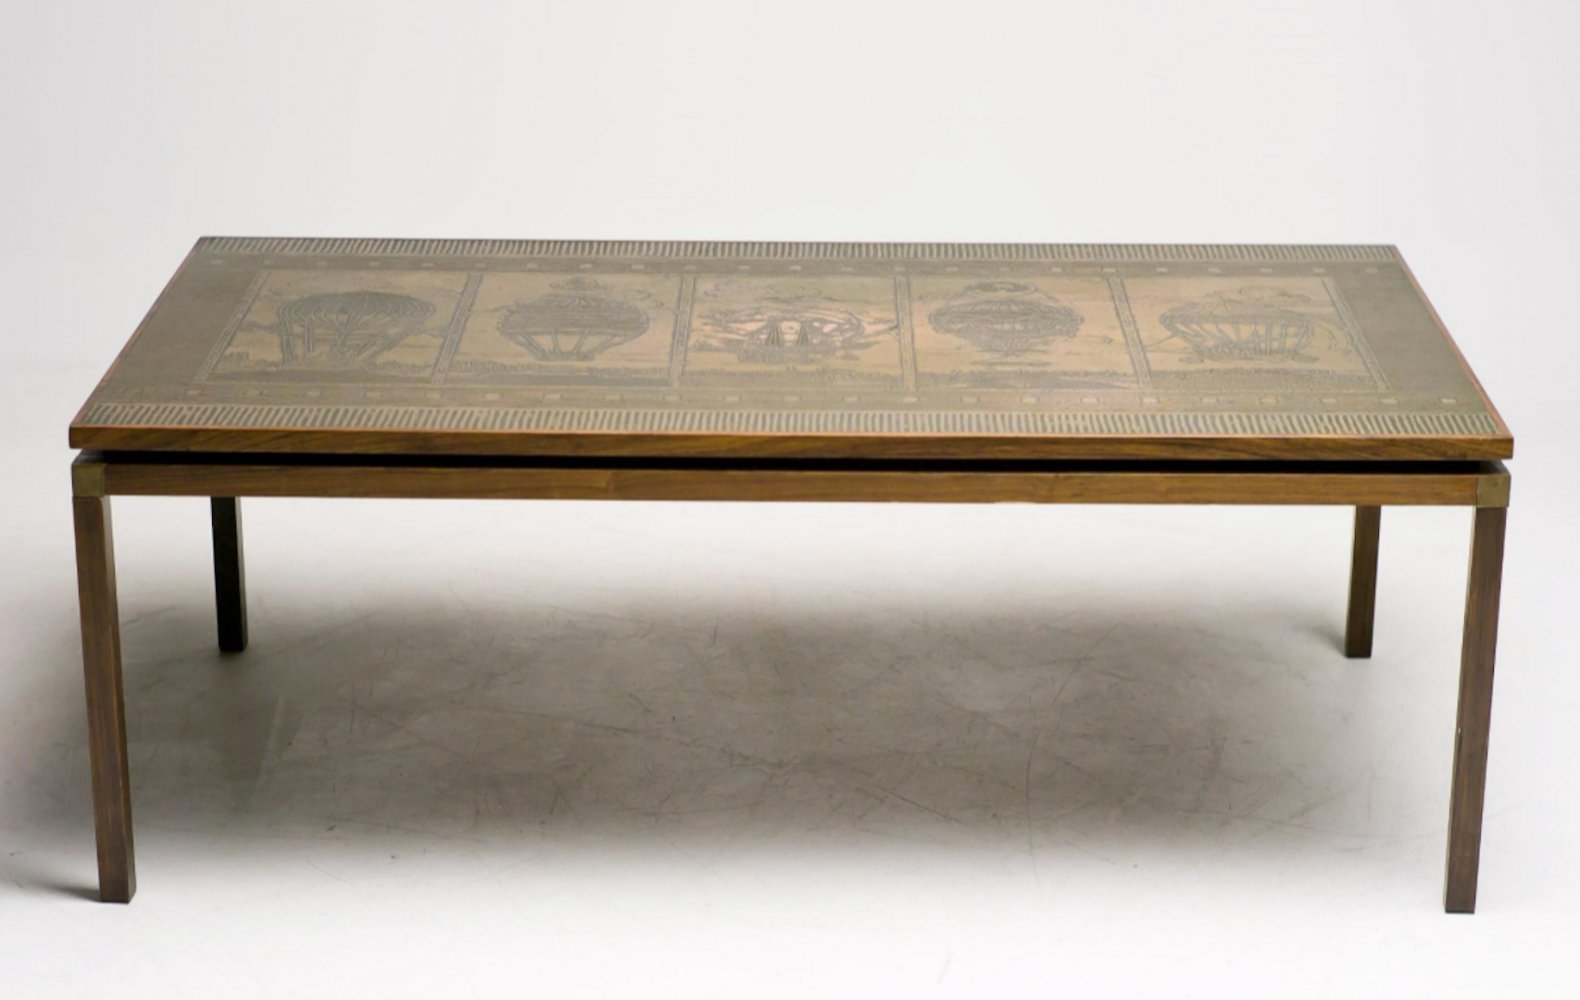 Danish coffee table with embossed copper inlaid, 1960